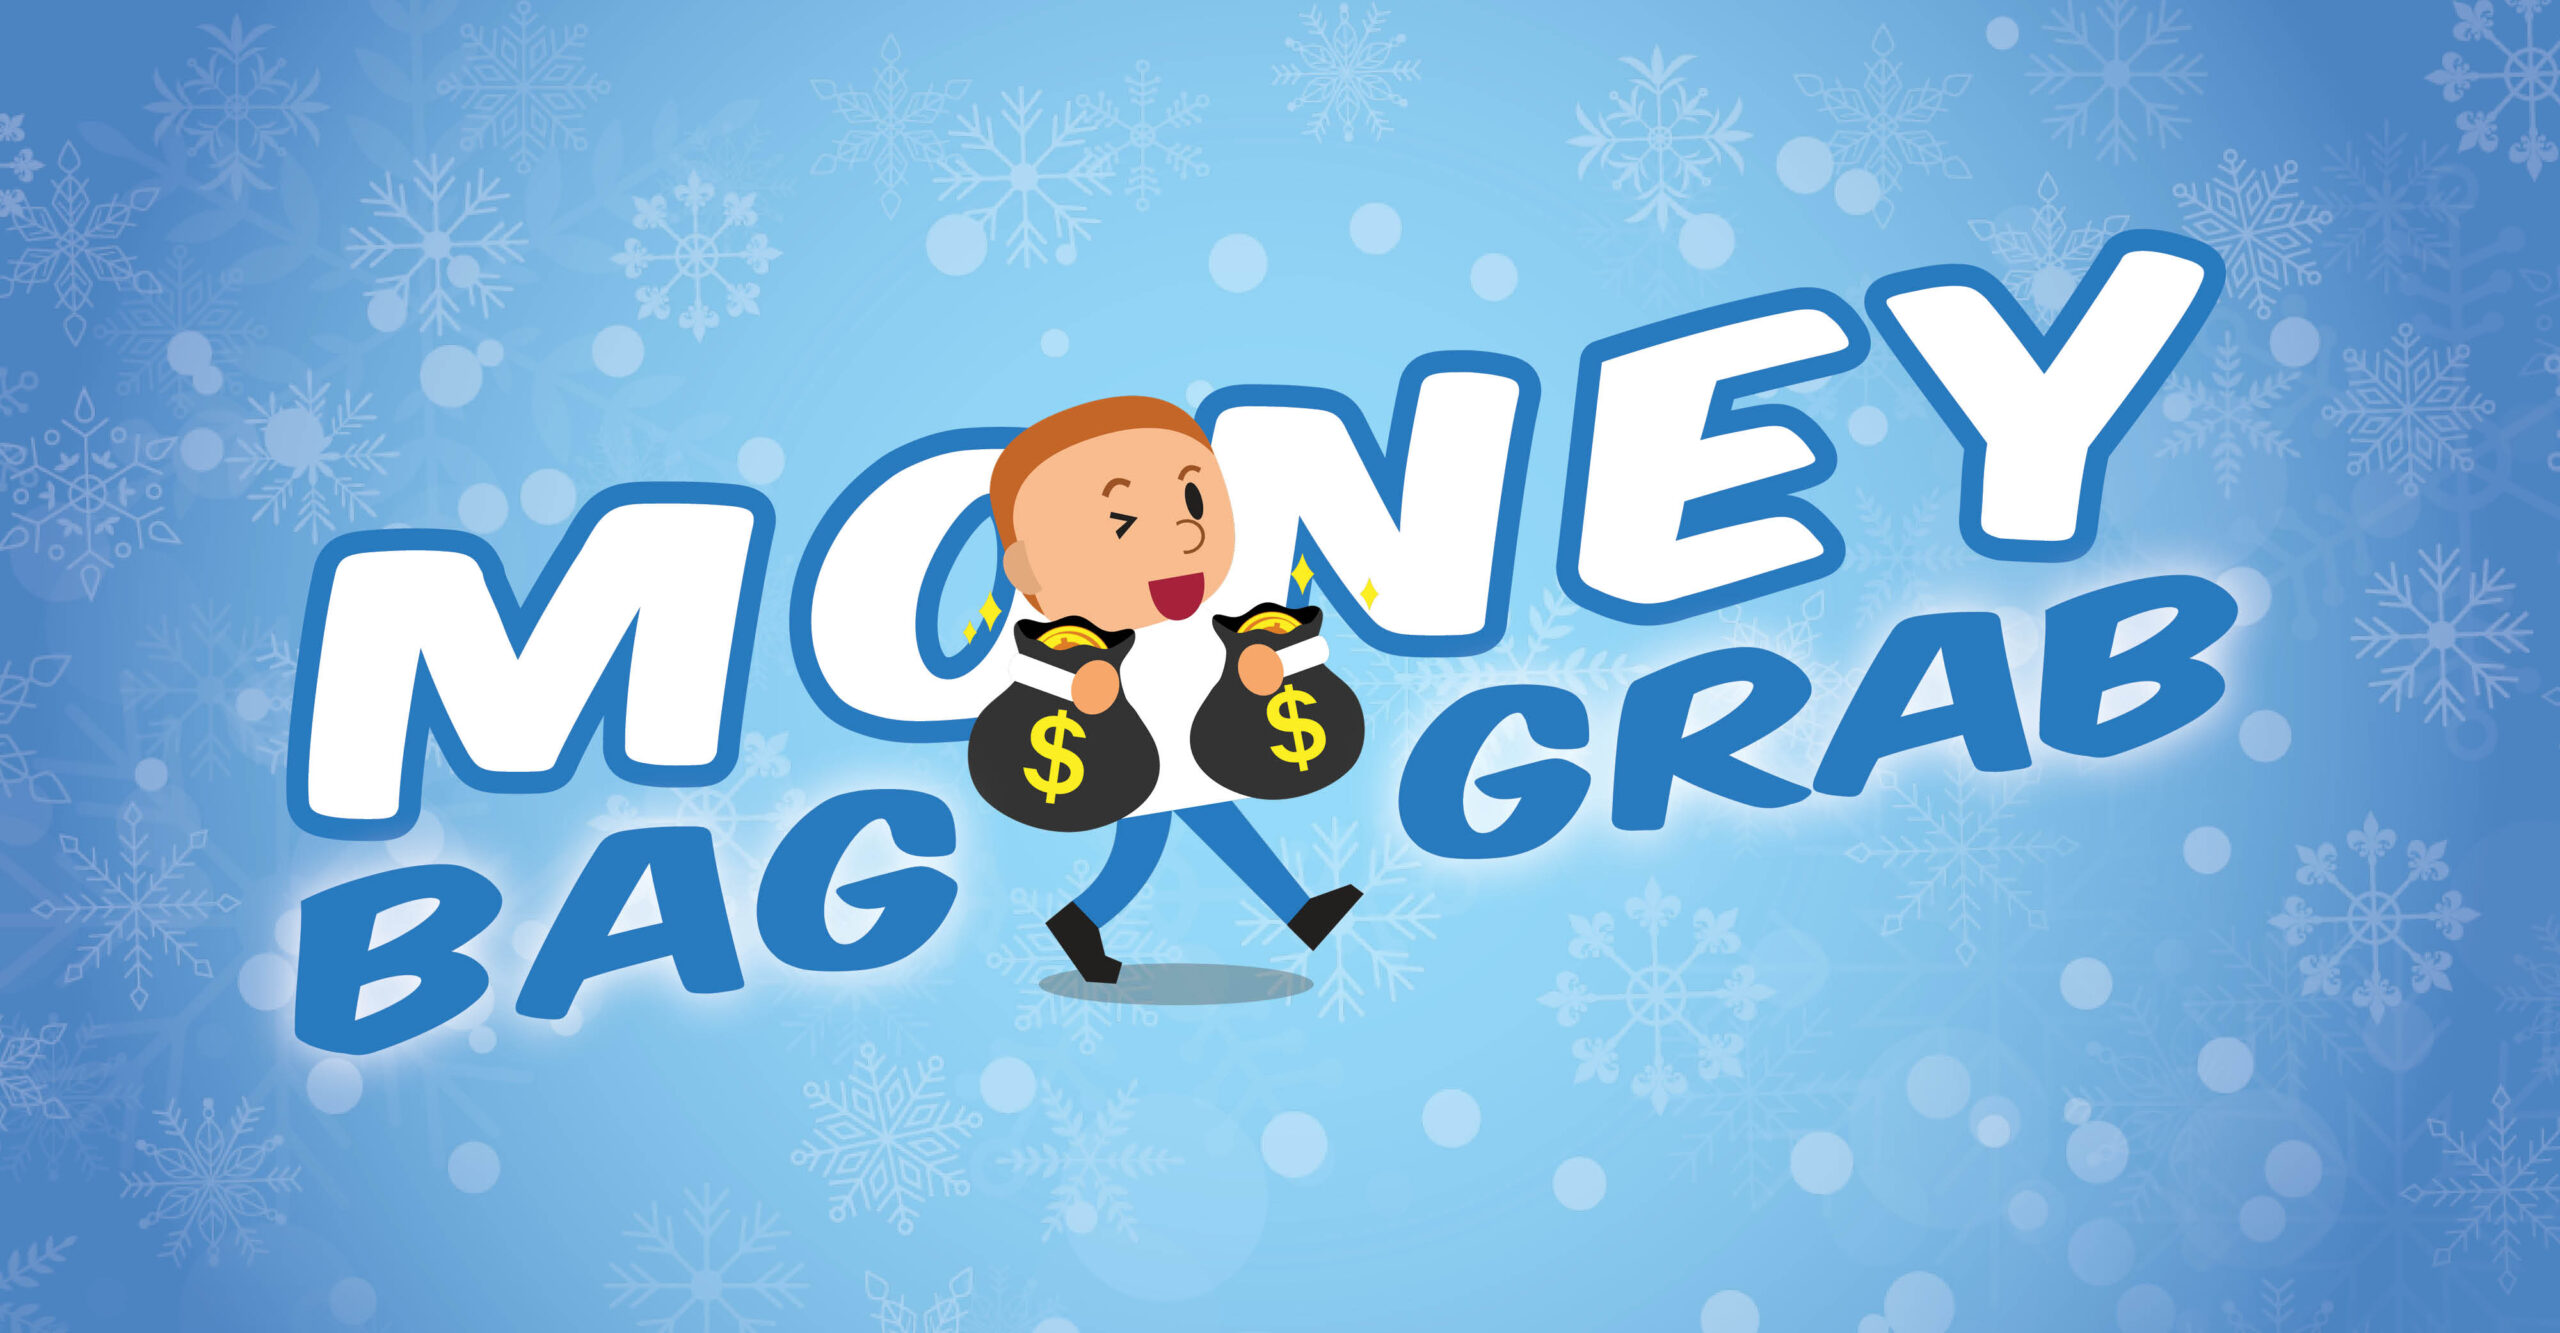 January Money Bag Grab